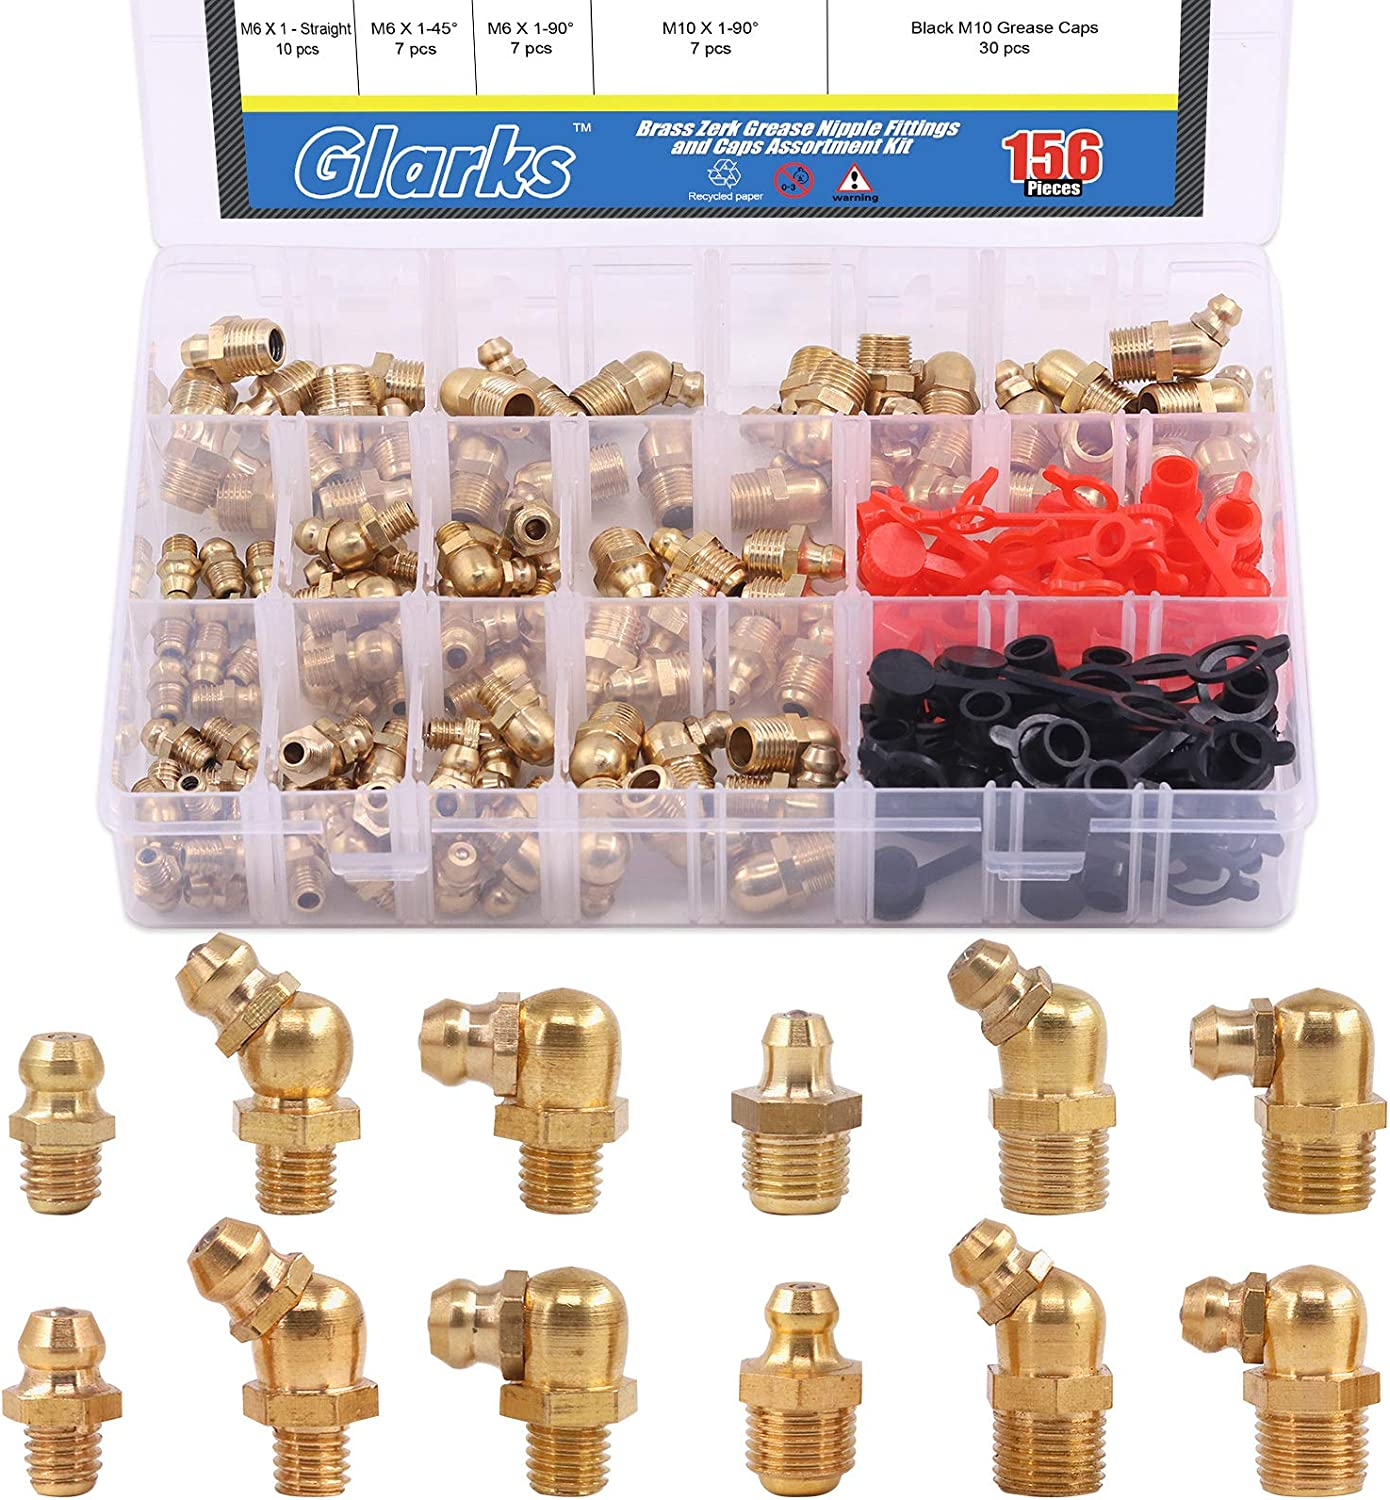 Glarks 156Pcs Metric SAE Straight Limited time sale 90 Boston Mall and 45 Degree